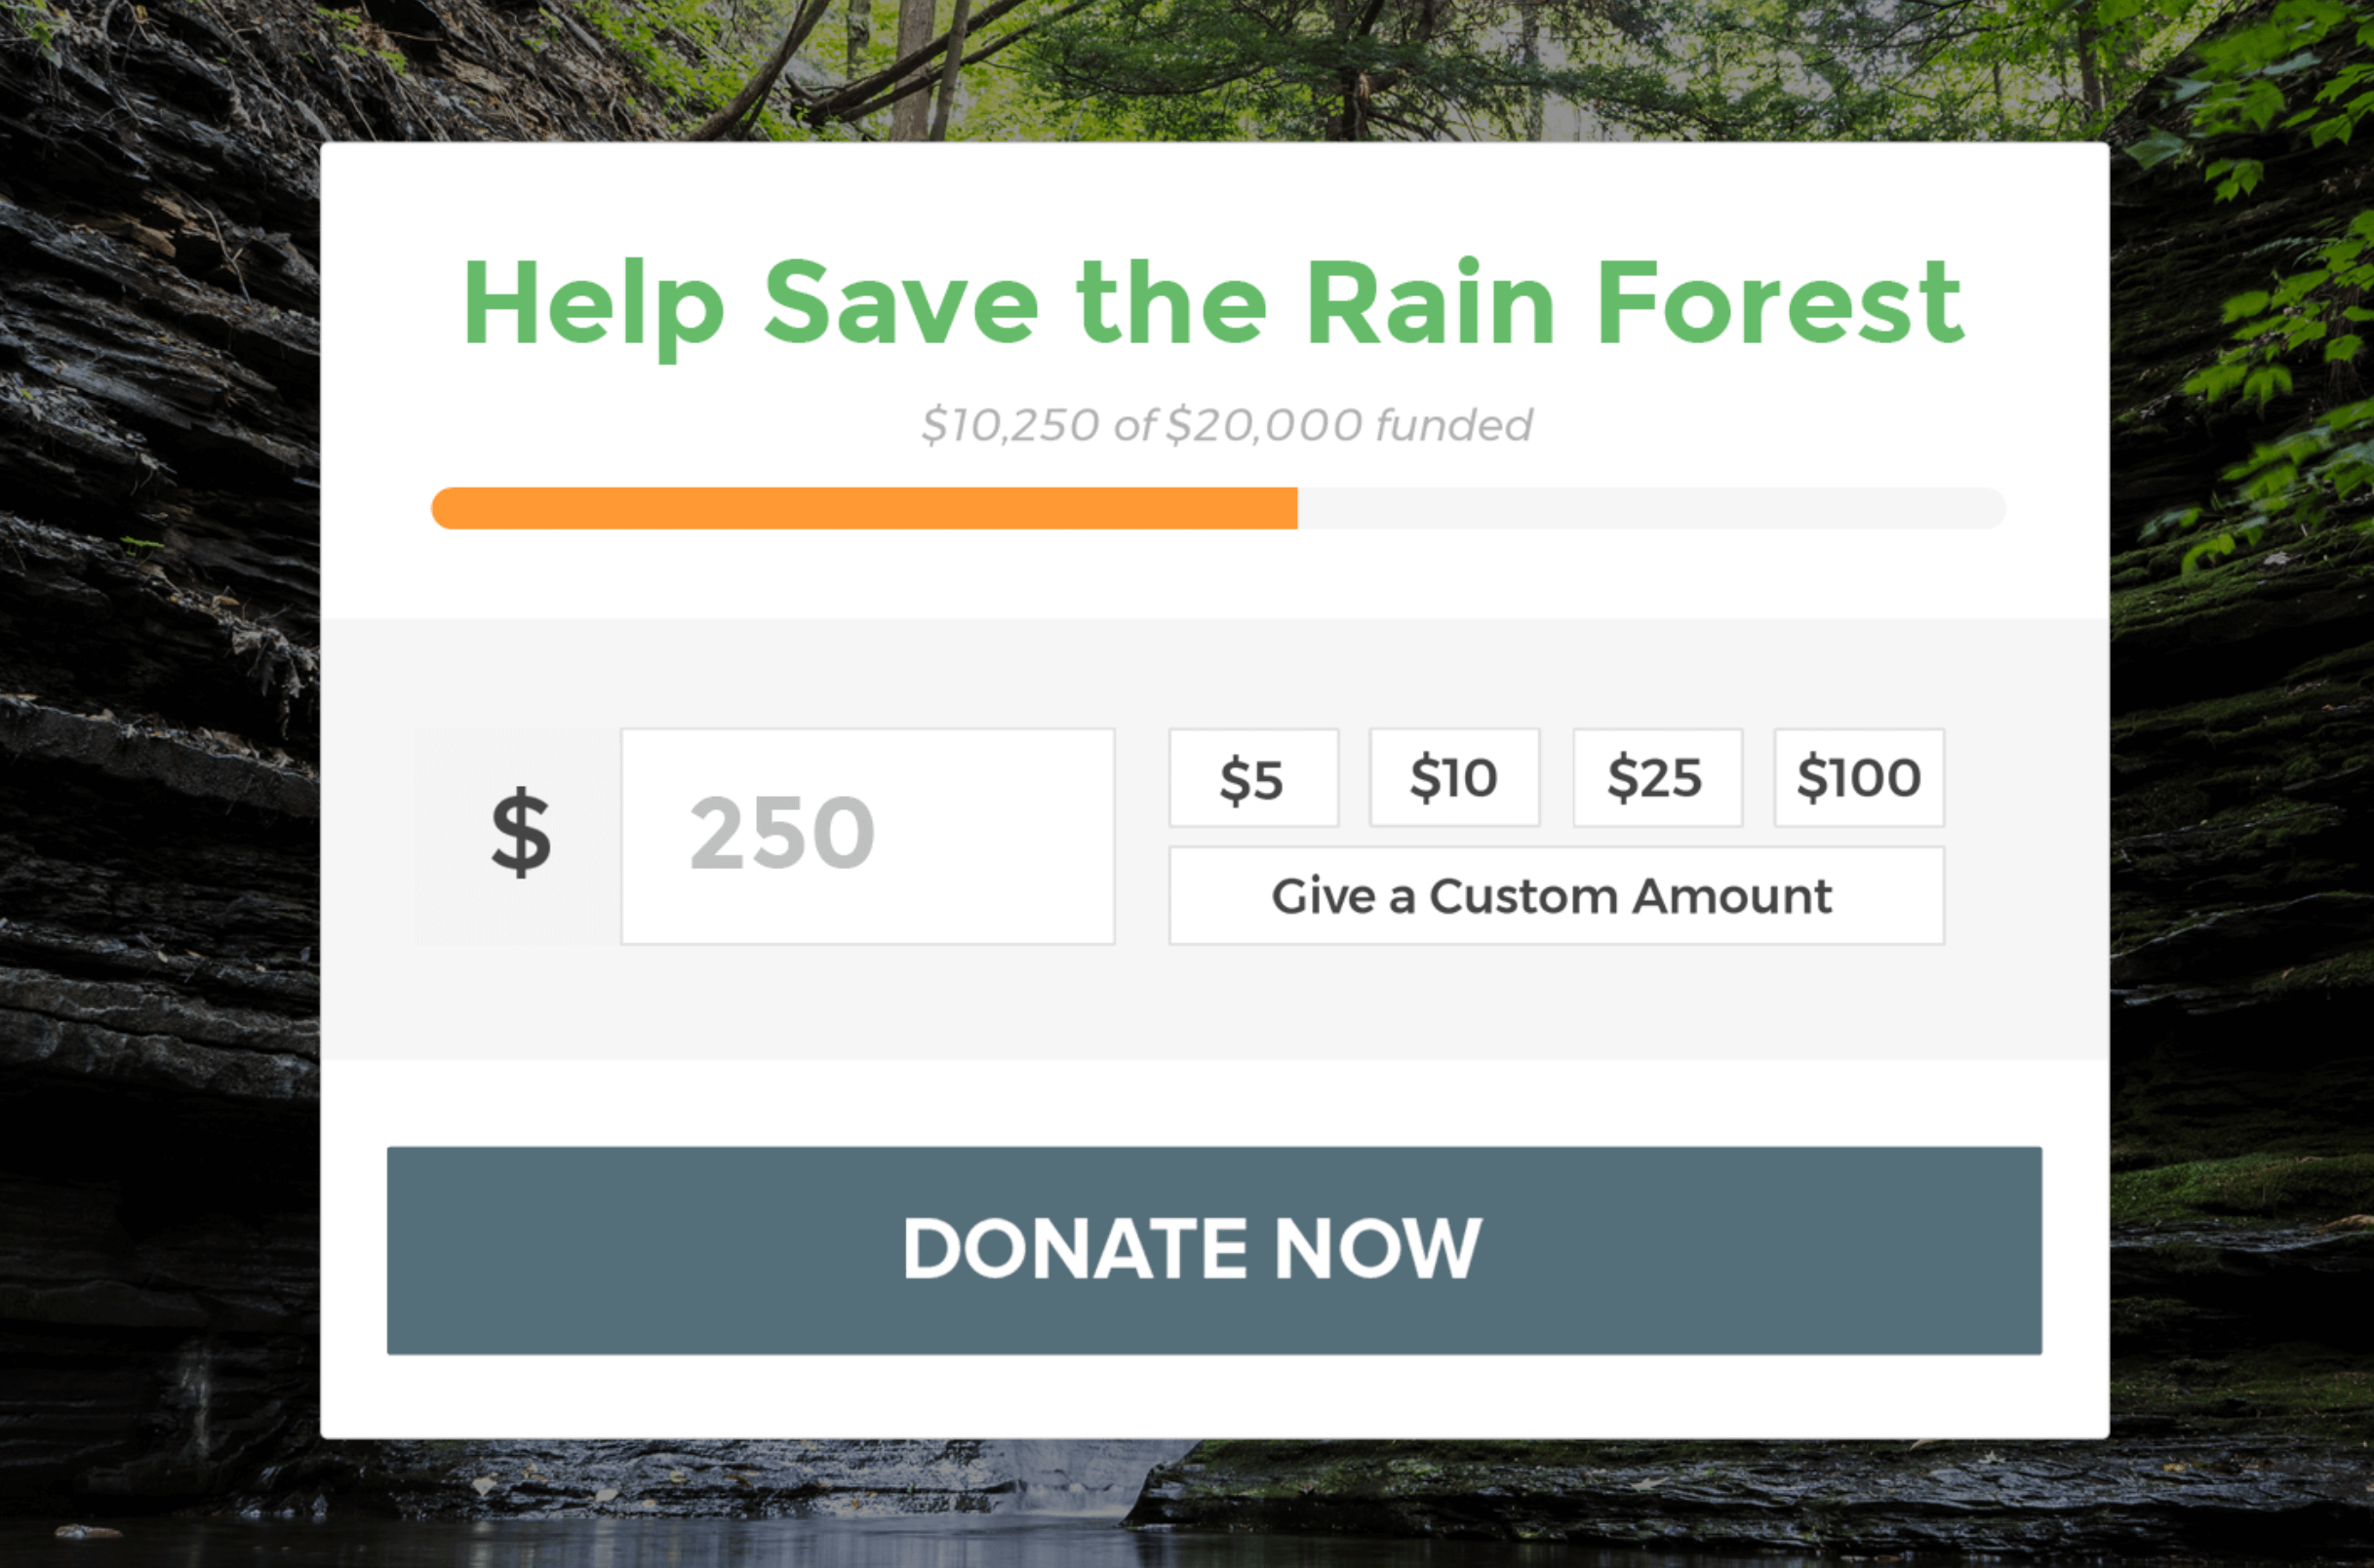 An example of how the funding goal and current donations can be displayed.